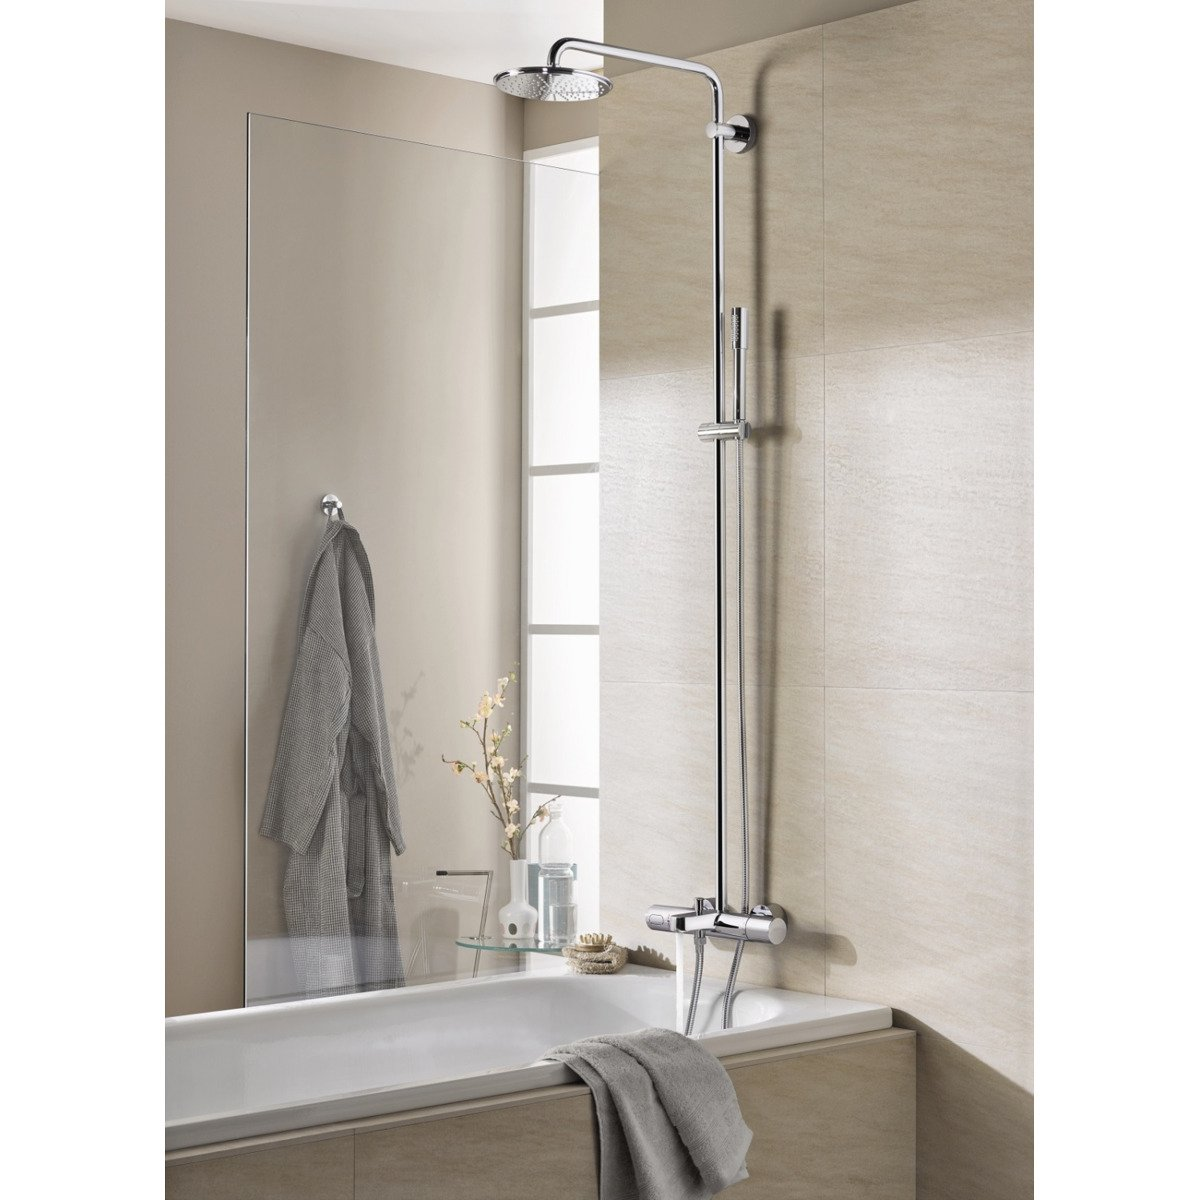 grohe rainshower colonne de douche avec robinet. Black Bedroom Furniture Sets. Home Design Ideas